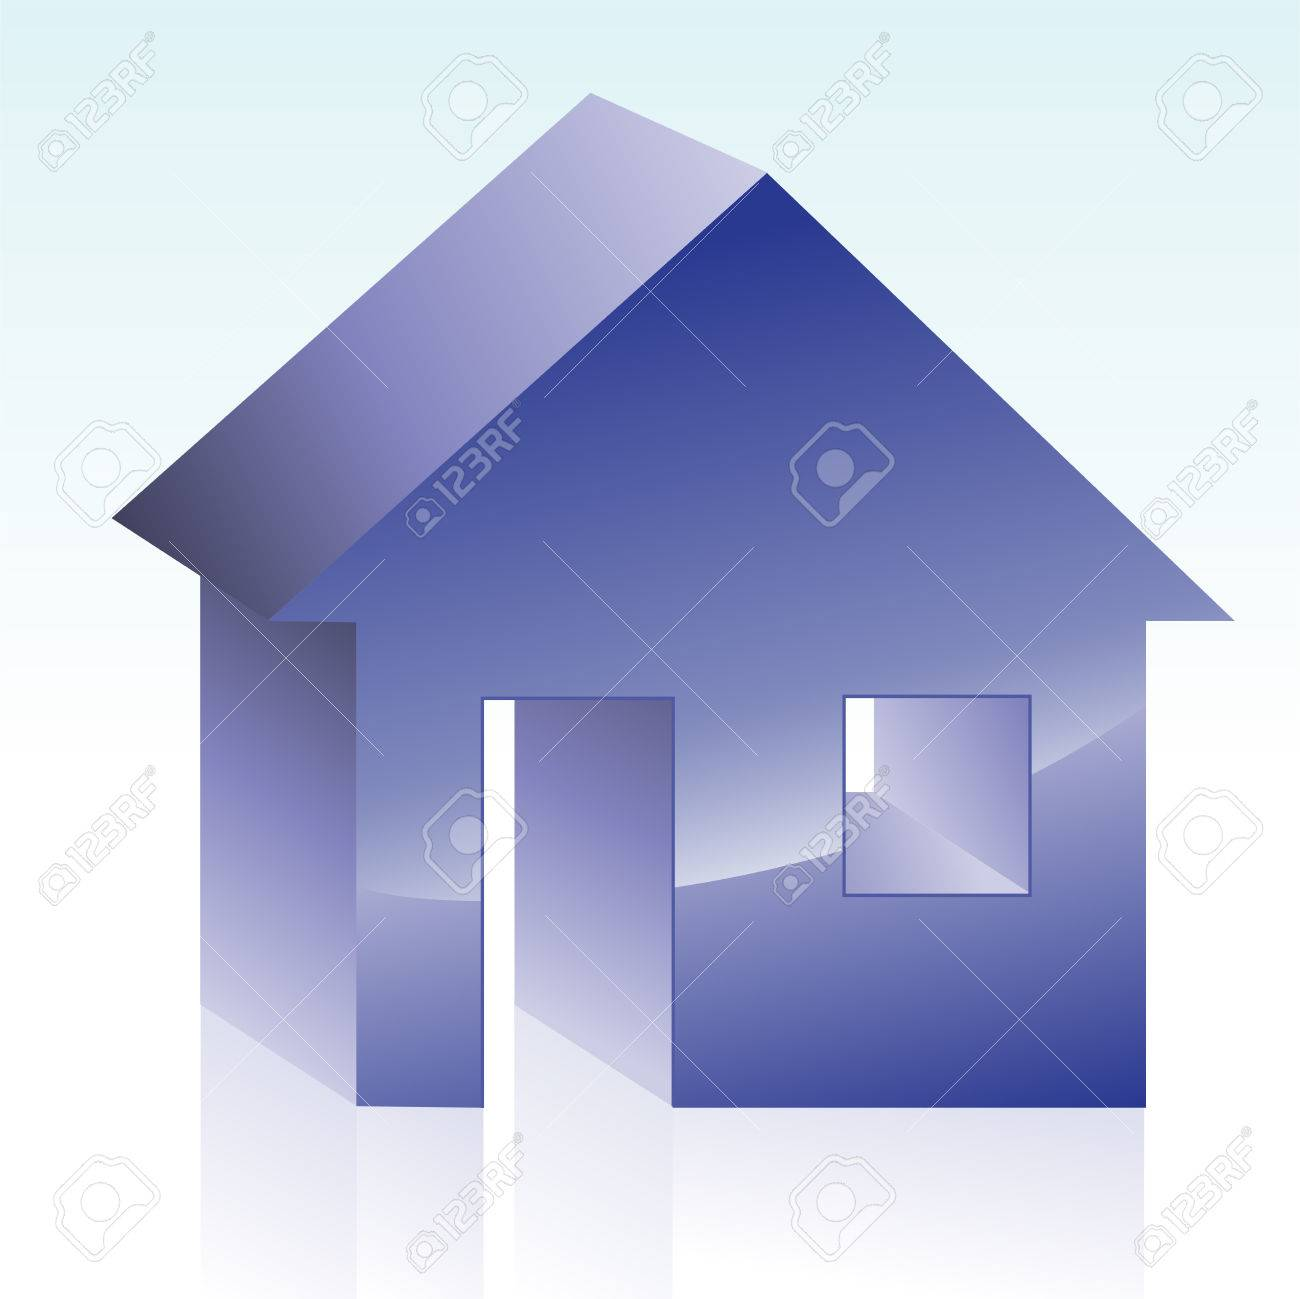 icon of a simple blue house on a white background Stock Vector - 24894729